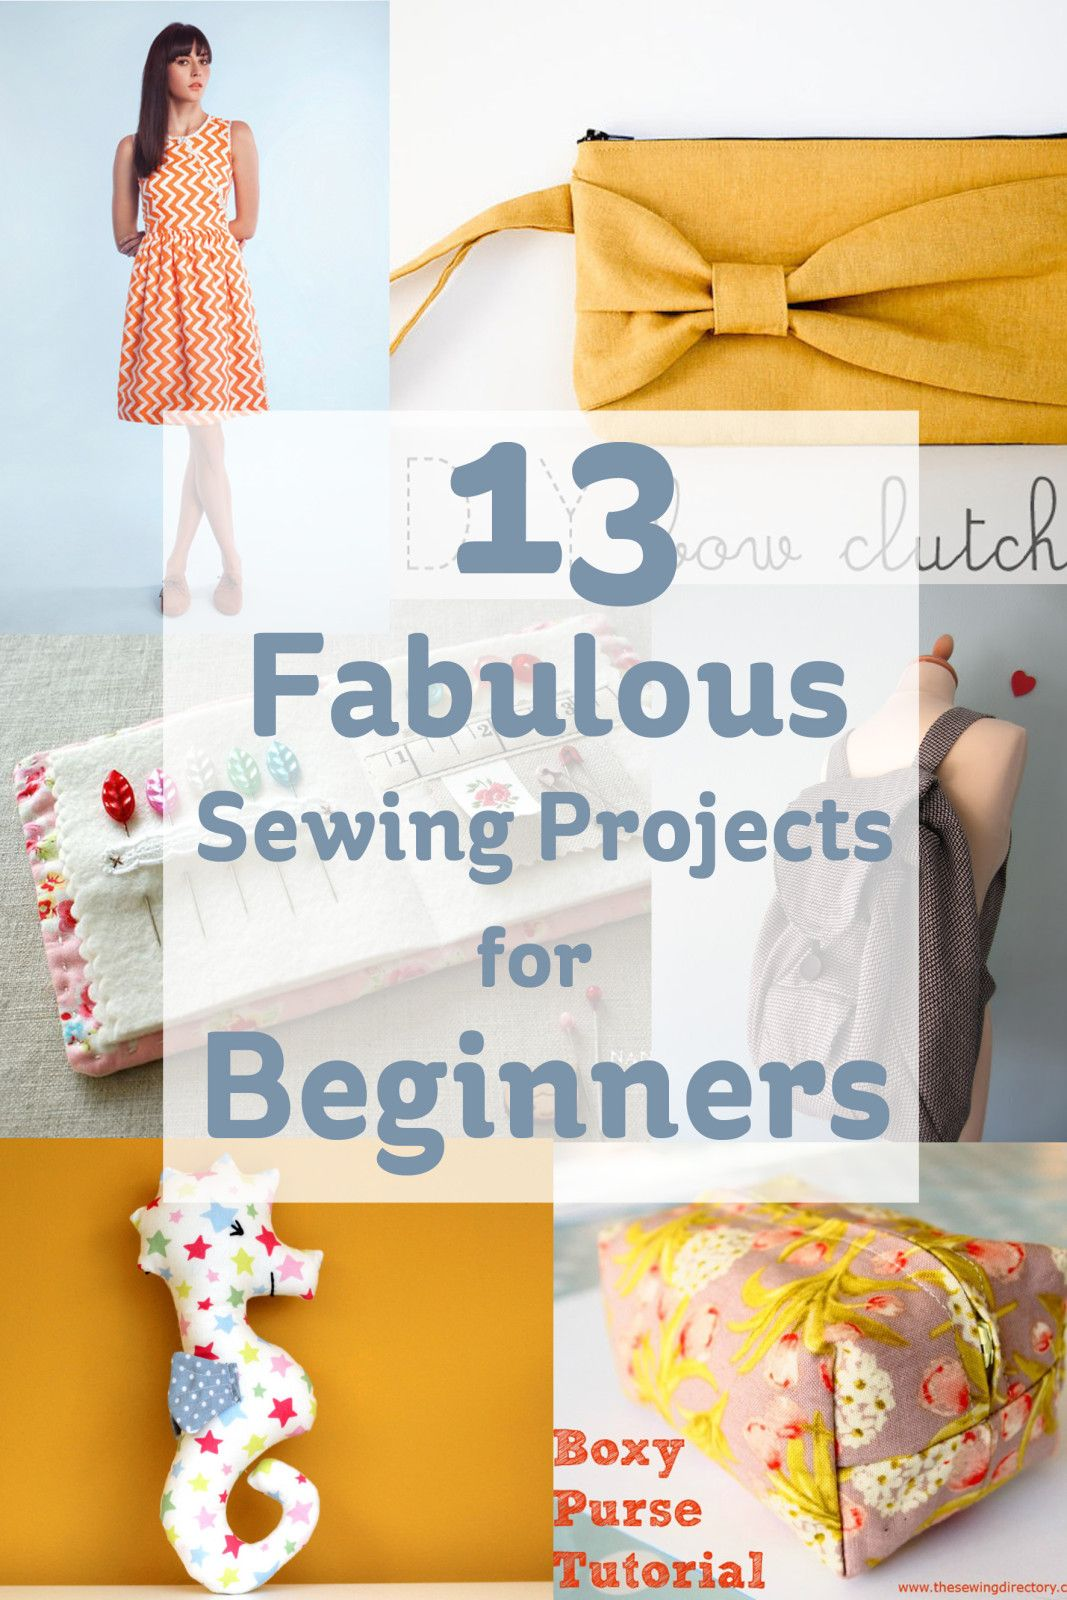 13 Fabulous Sewing Projects for Beginners | things to make ideas ...